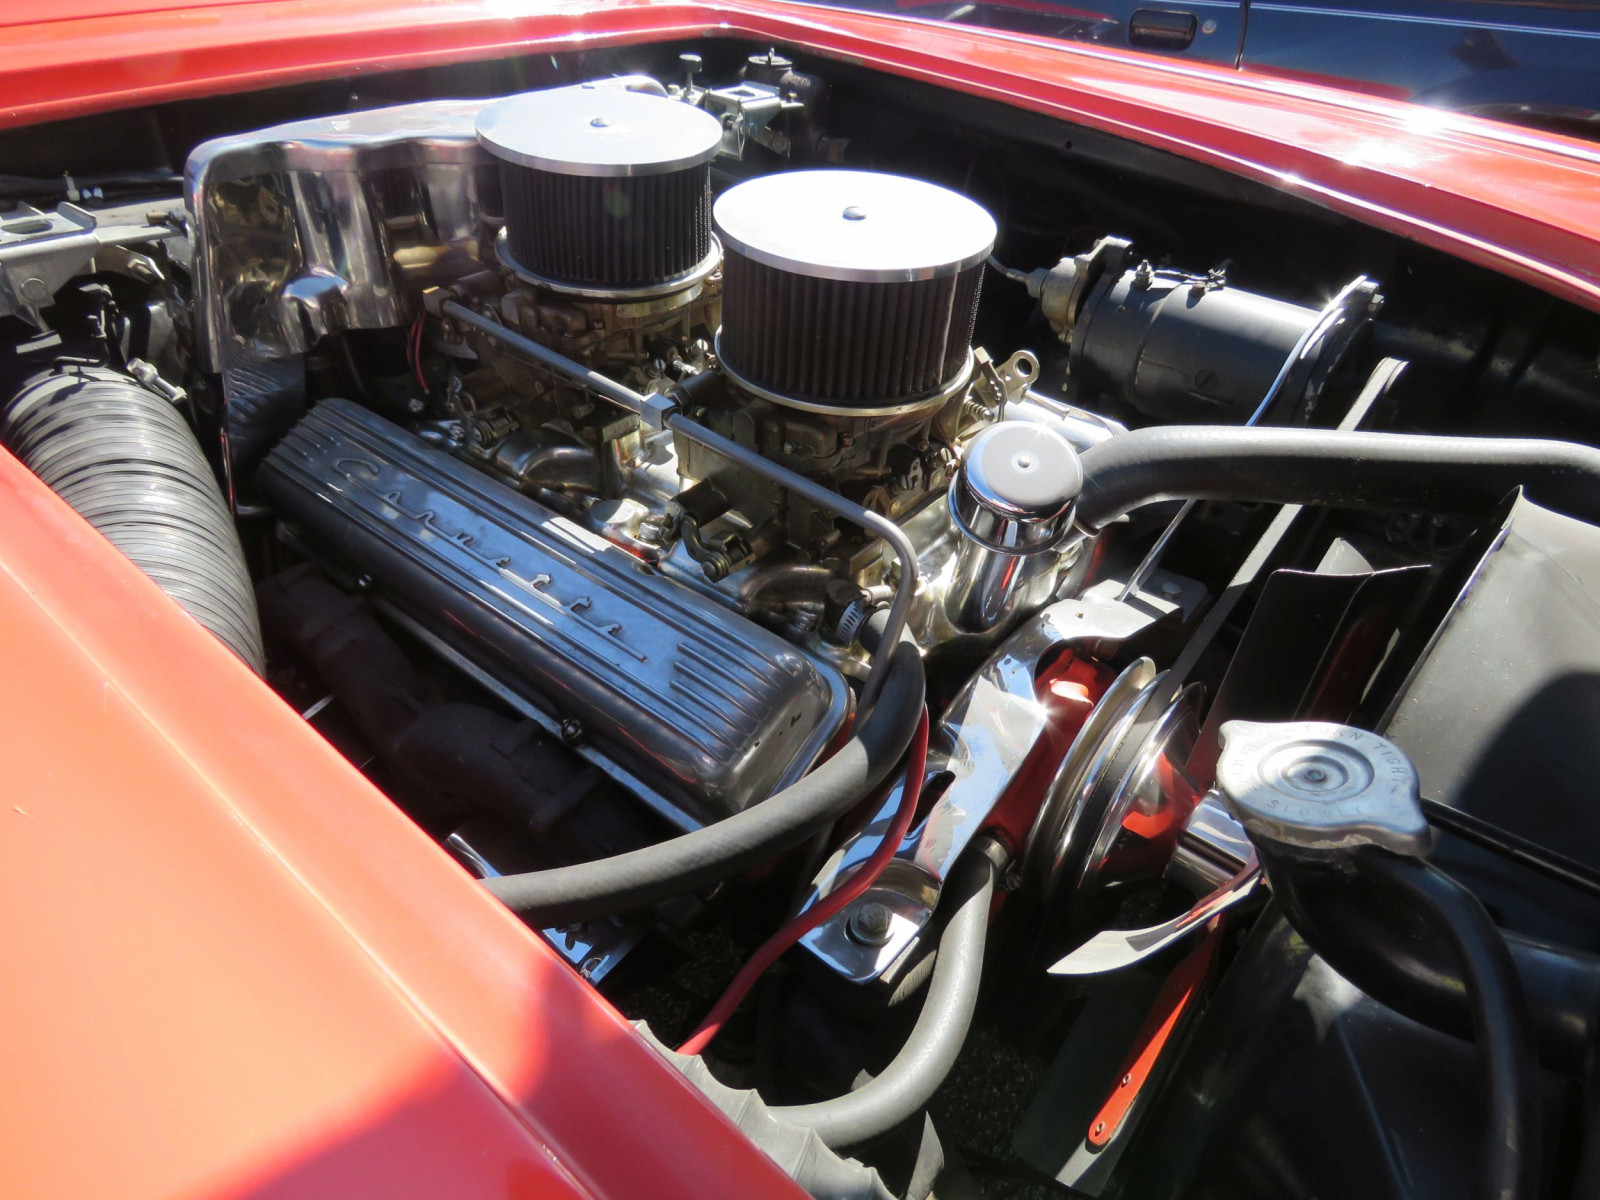 1958 CHEVROLET CORVETTE FUEL INJECTED ROADSTER - Image 20